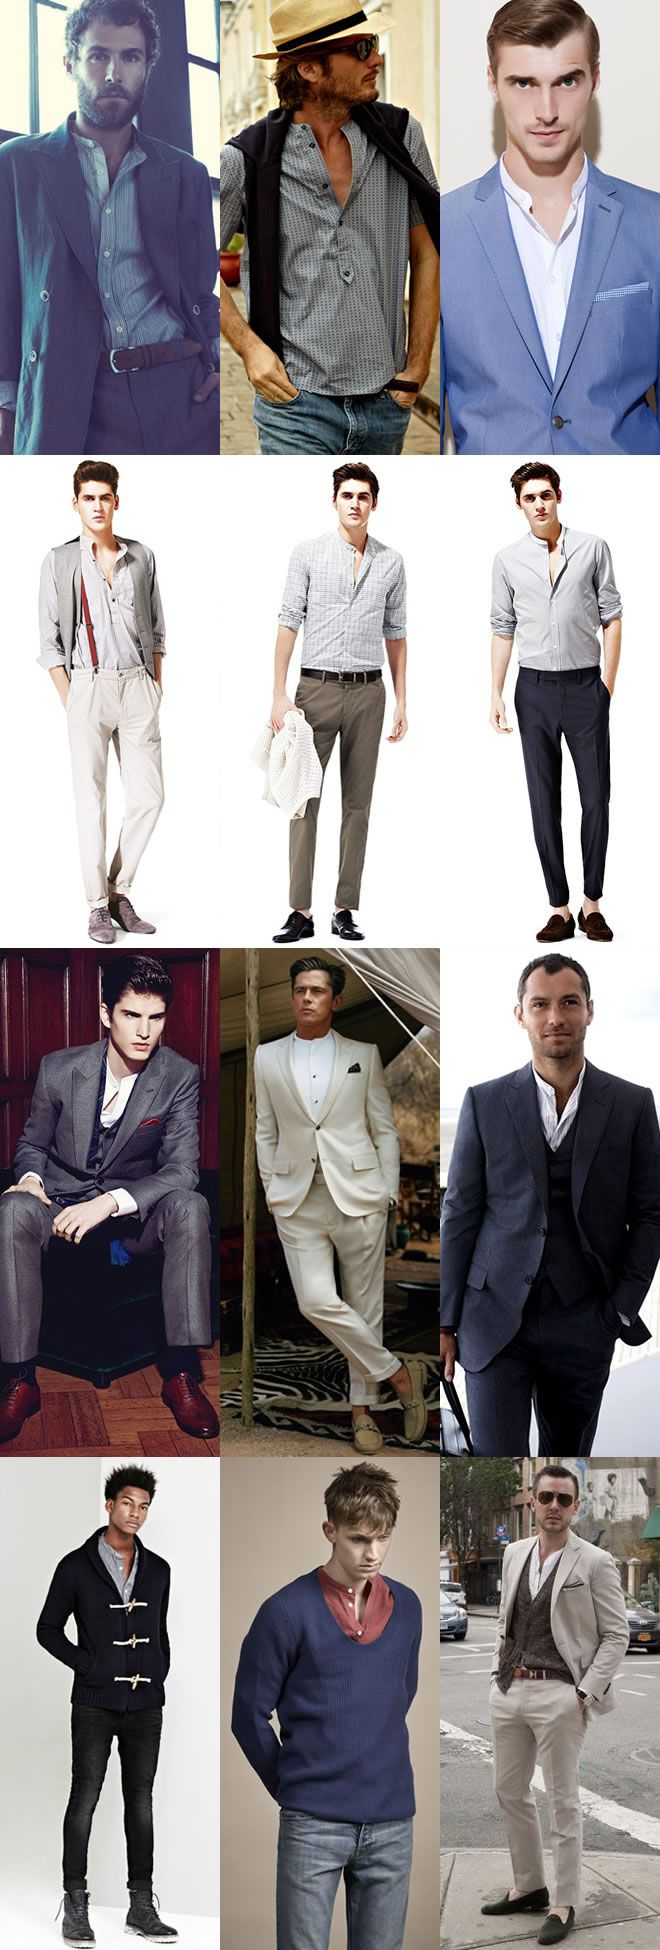 I just love the cool way grandad collar shirts bring to any look, both too casual or workwear apparel.